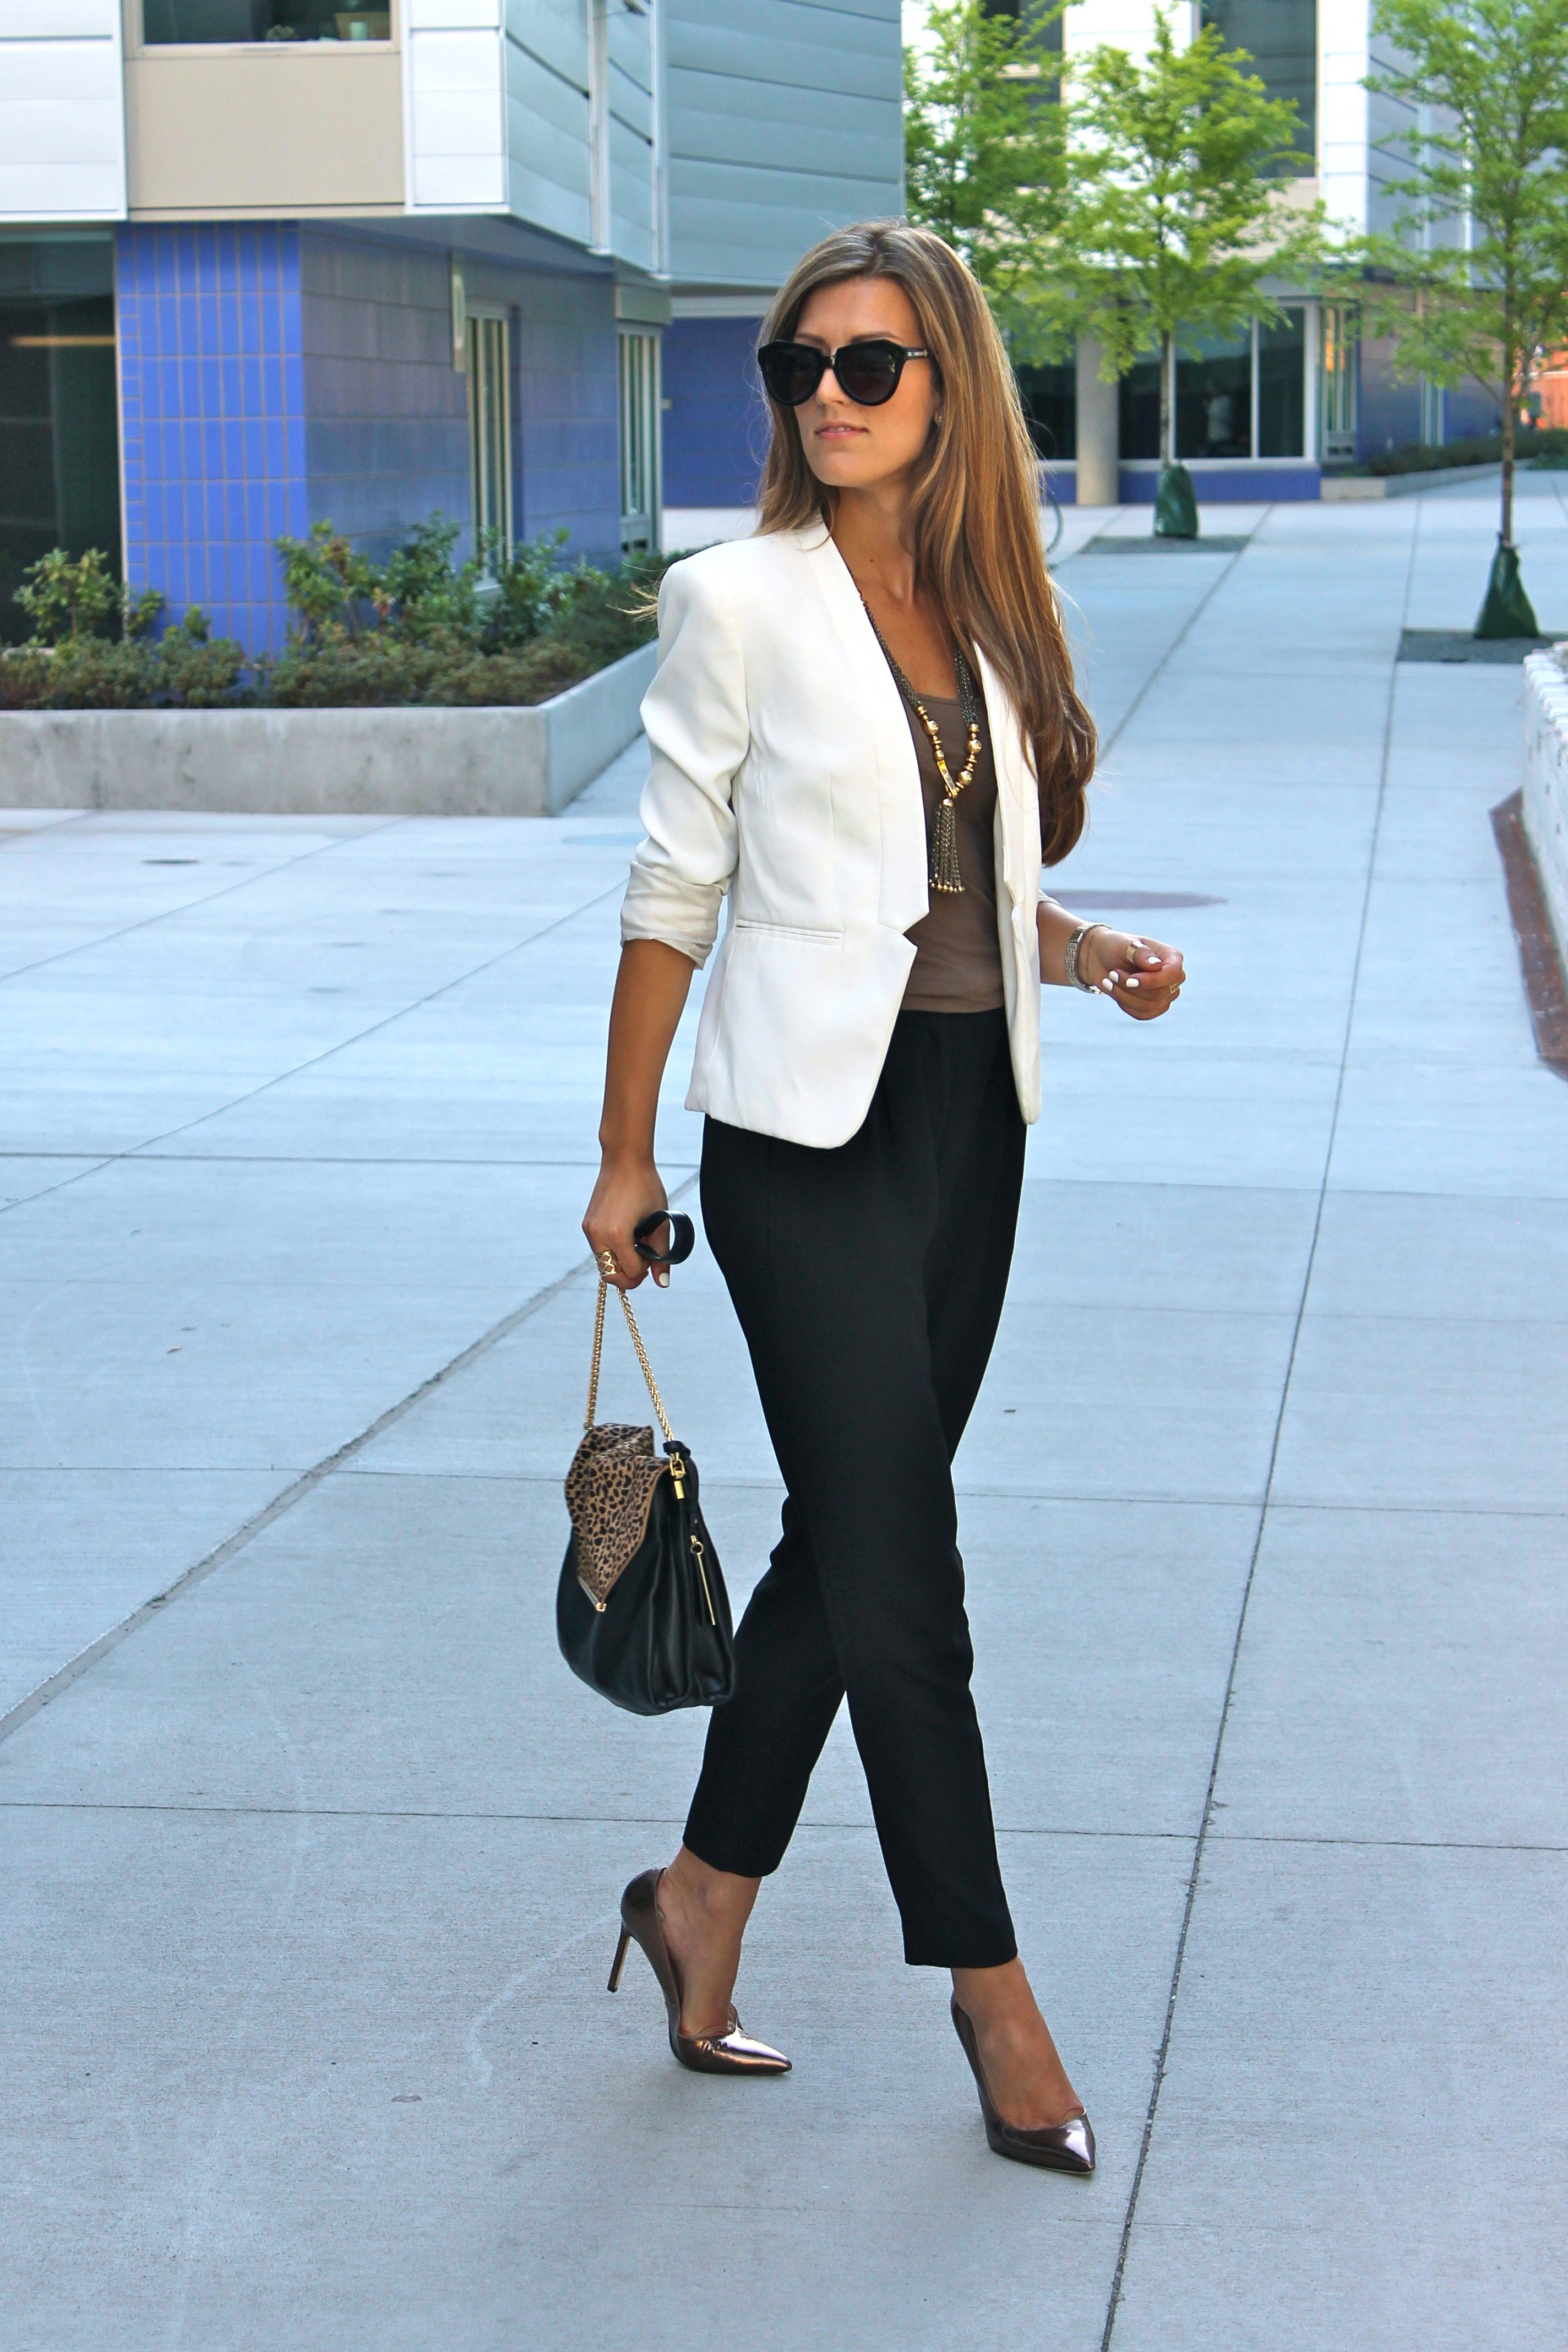 Office Outfit for Women | Interview Outfit Ideas ...